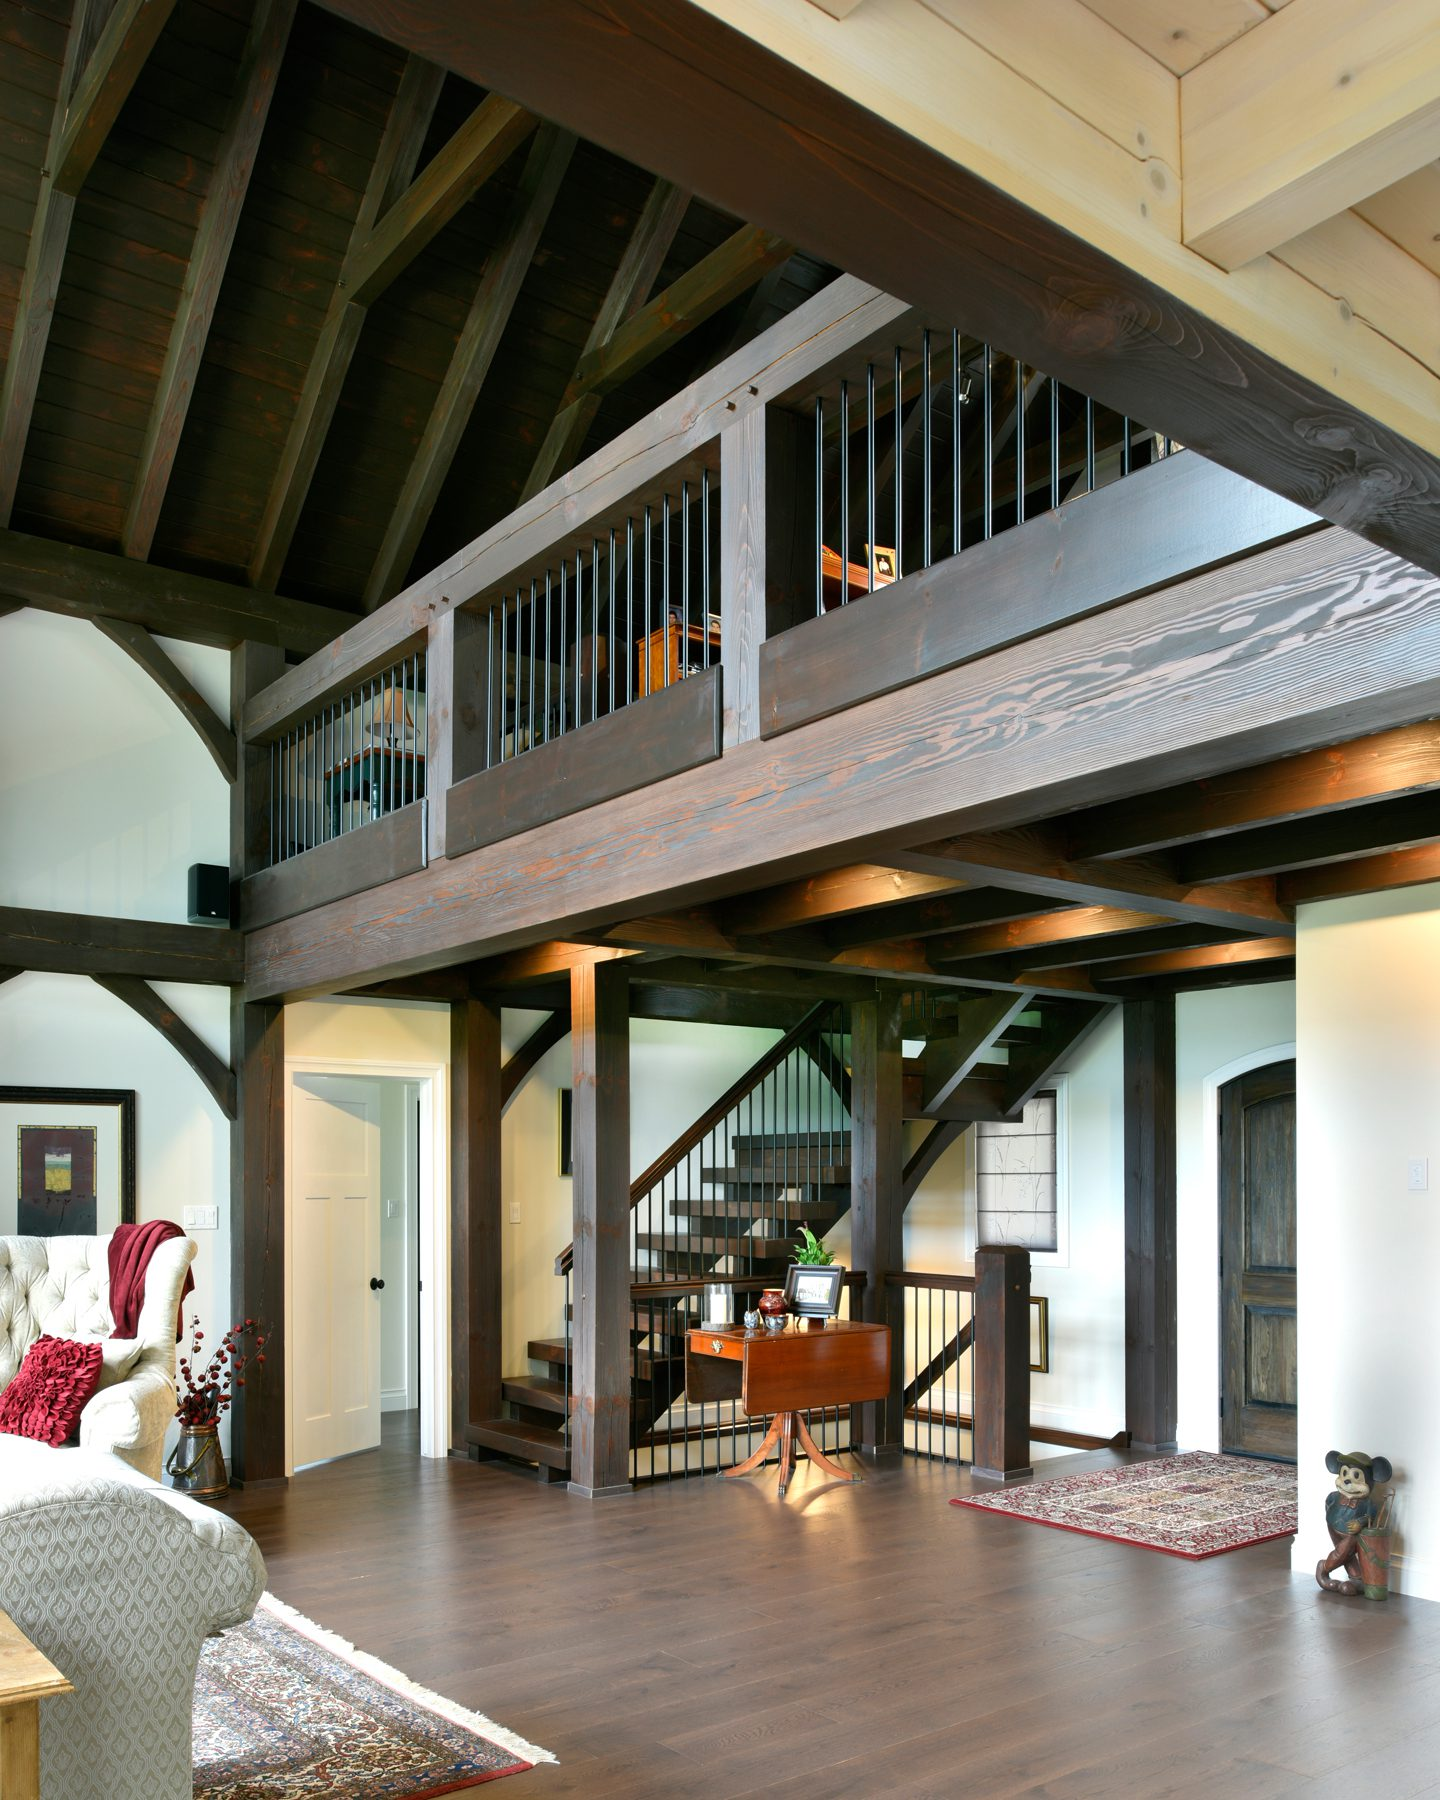 Normerica Timber Frame, Interior, Cottage, Loft, Cathedral Ceiling, Open Concept, Stairs, Entry